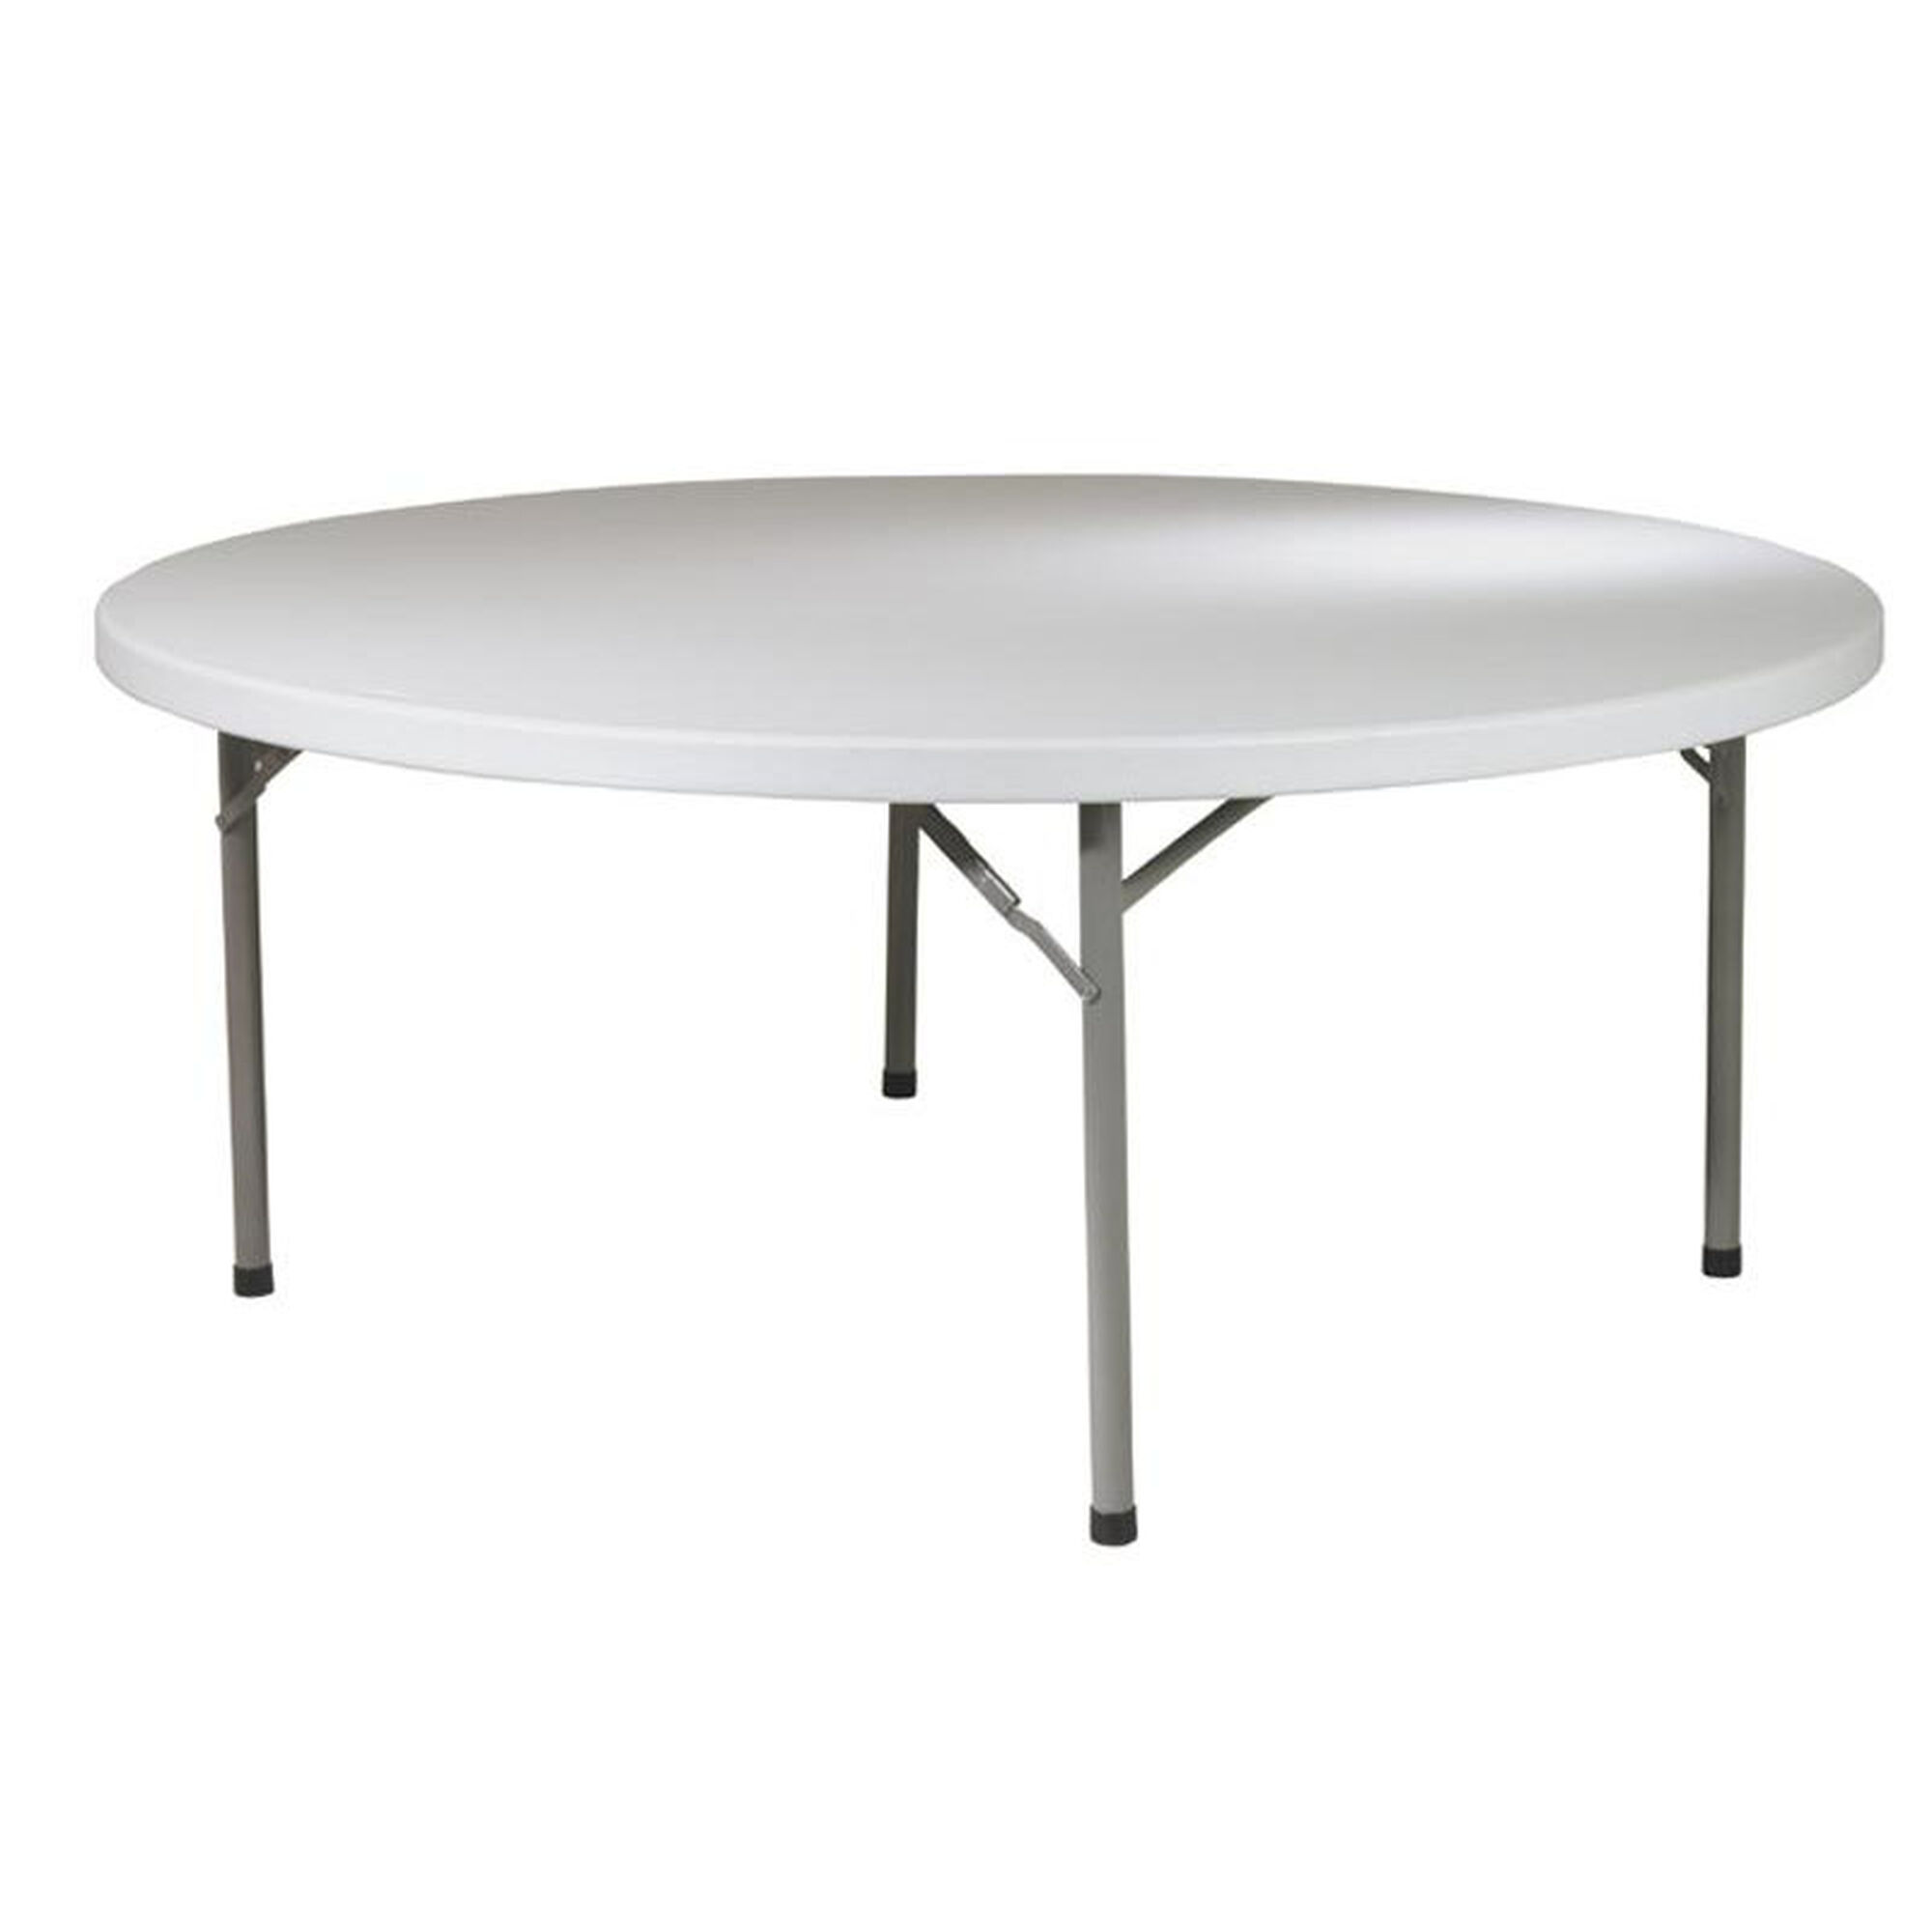 Round Table Seating Capacity Work Smart Resin Folding Table Bt71q Foldingchairs4less Com